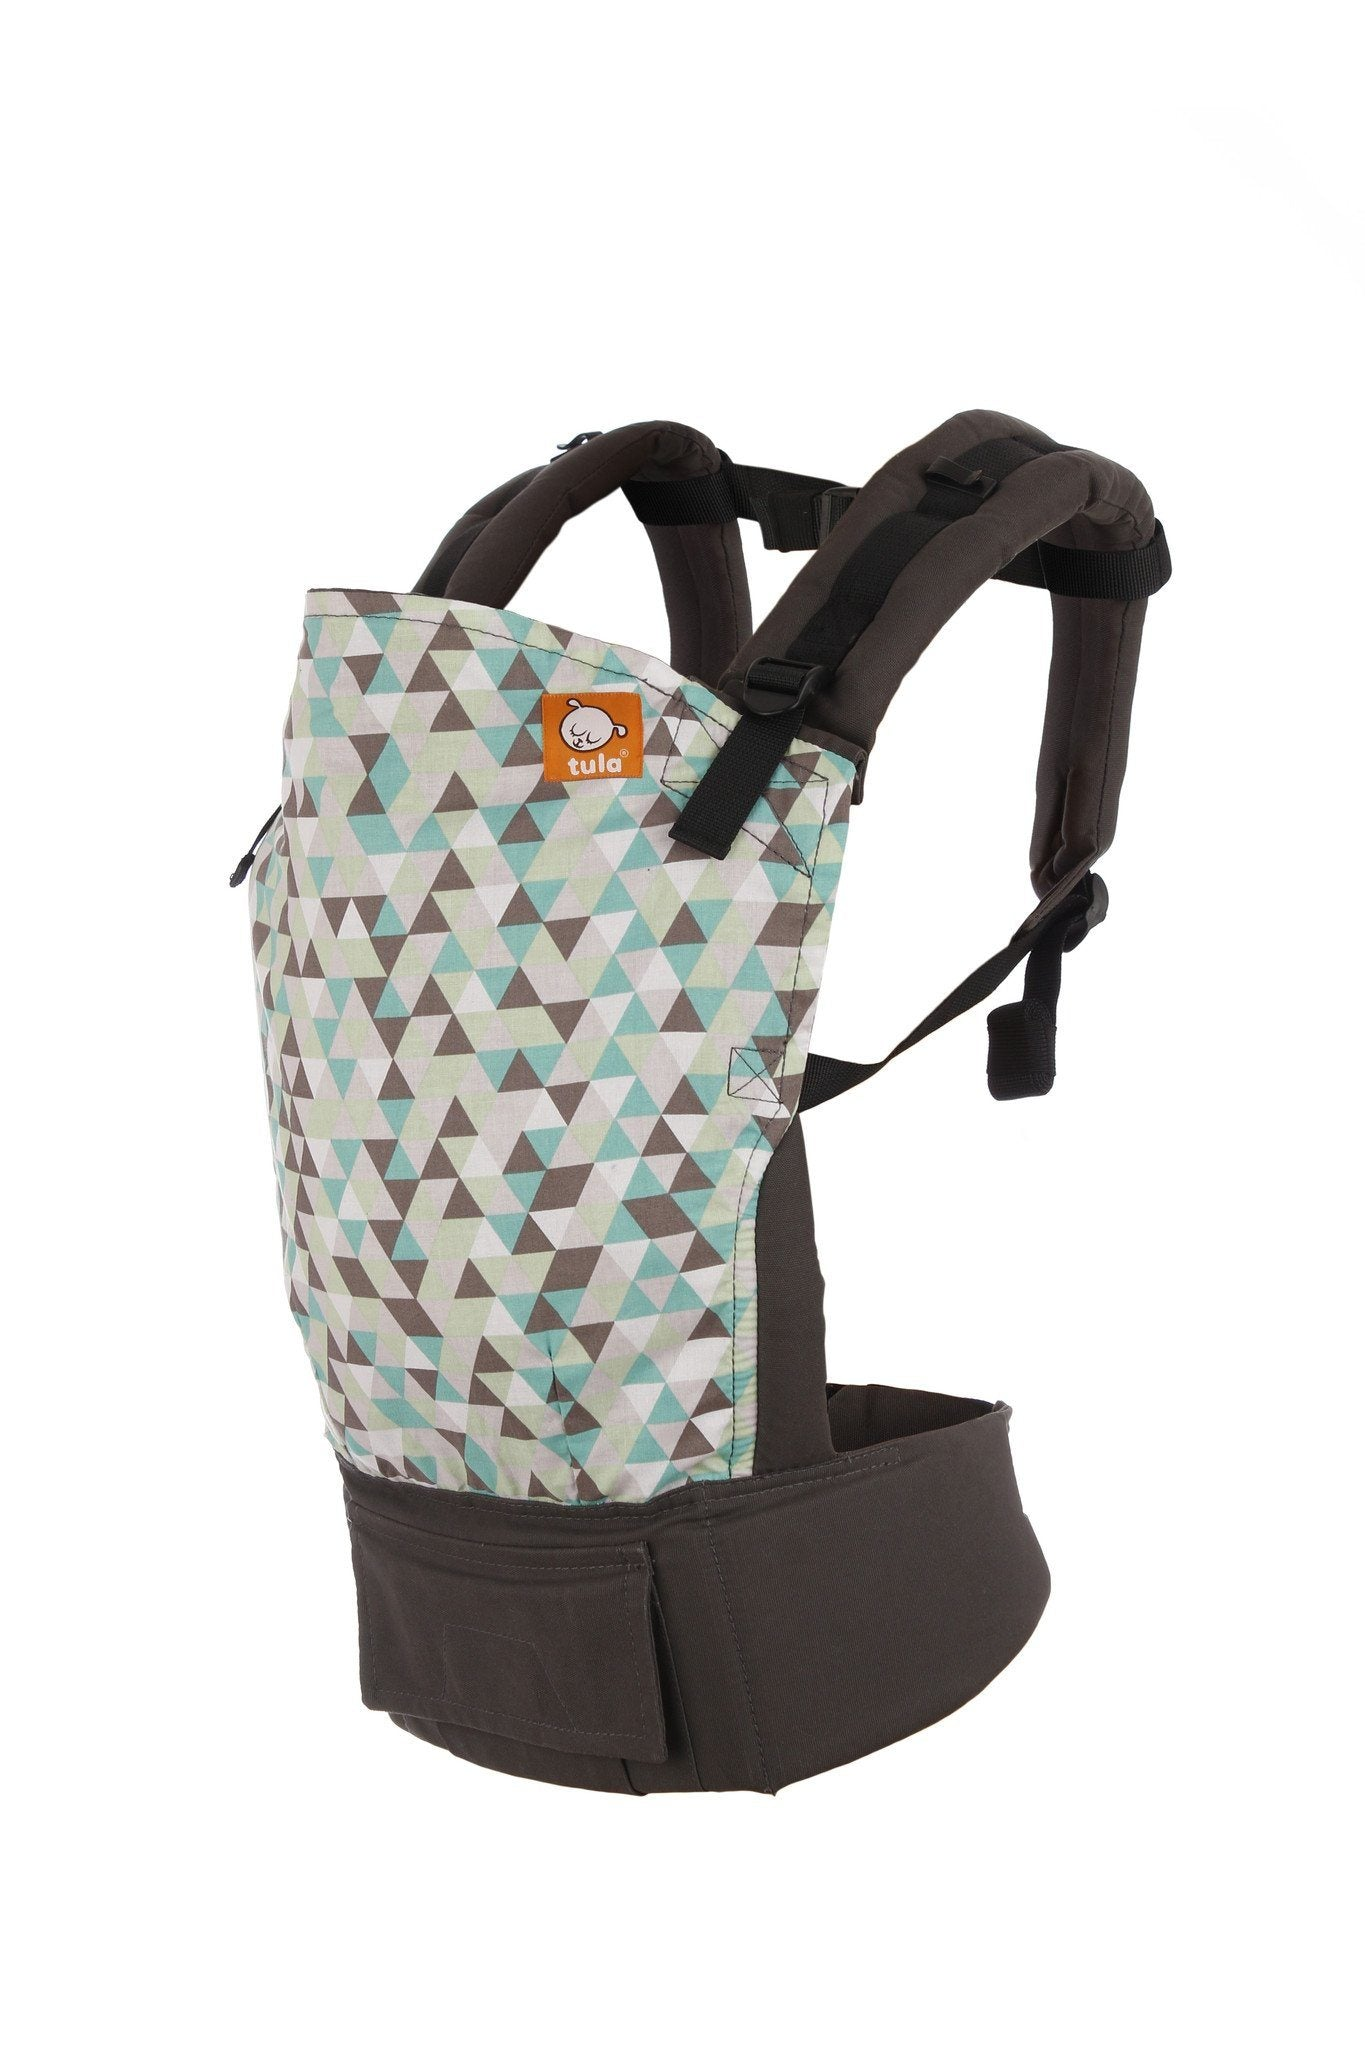 Equilateral Tula Standard Carrier Baby Tula